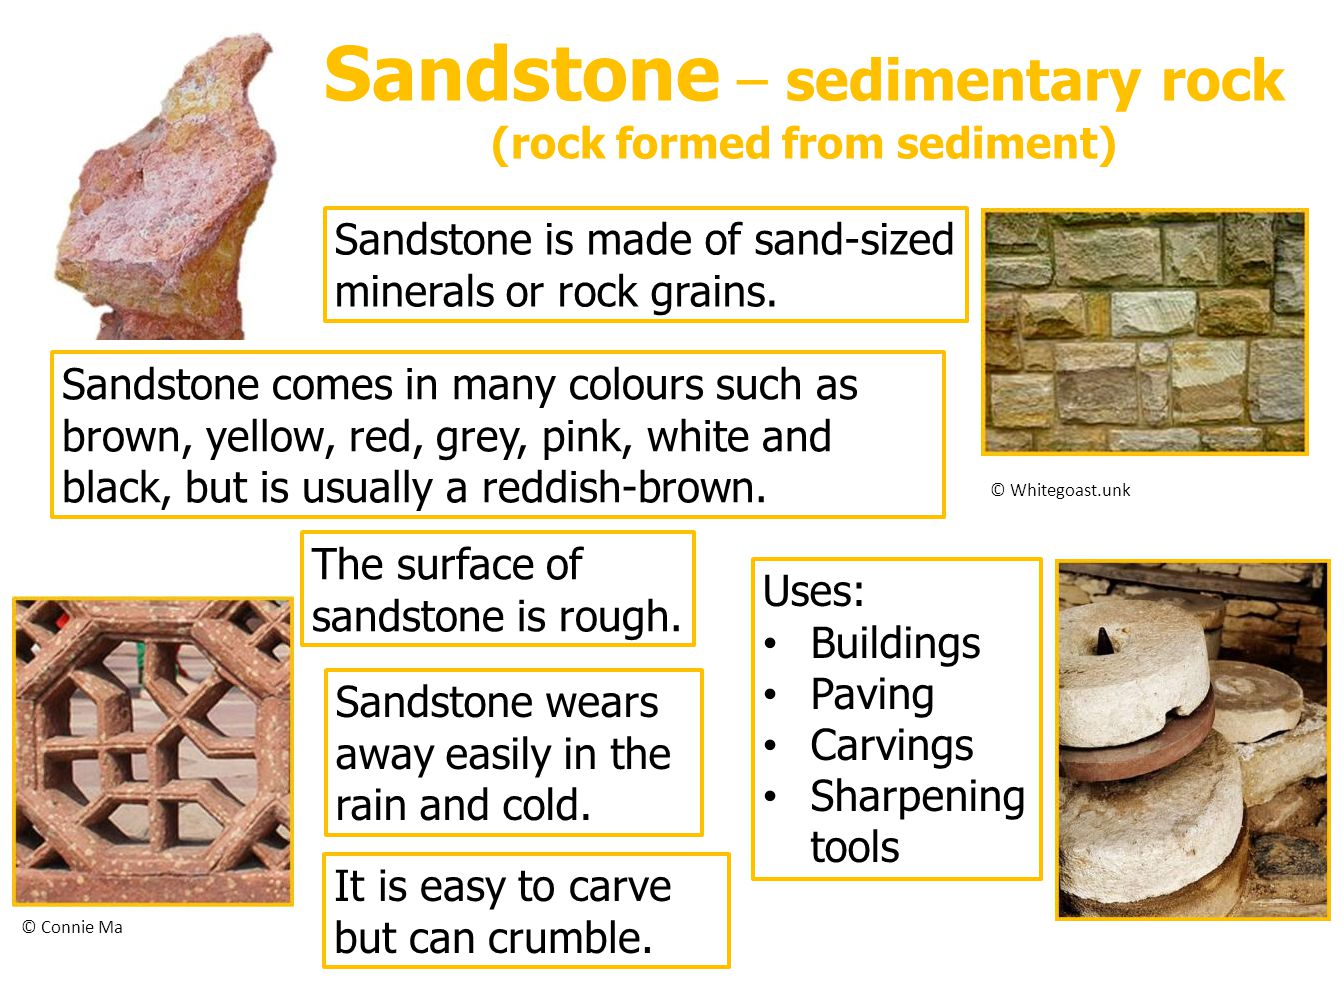 Sandstone – sedimentary rock (rock formed from sediment) Sandstone is made of sand-sized minerals or rock grains. Sandstone comes in many colours such